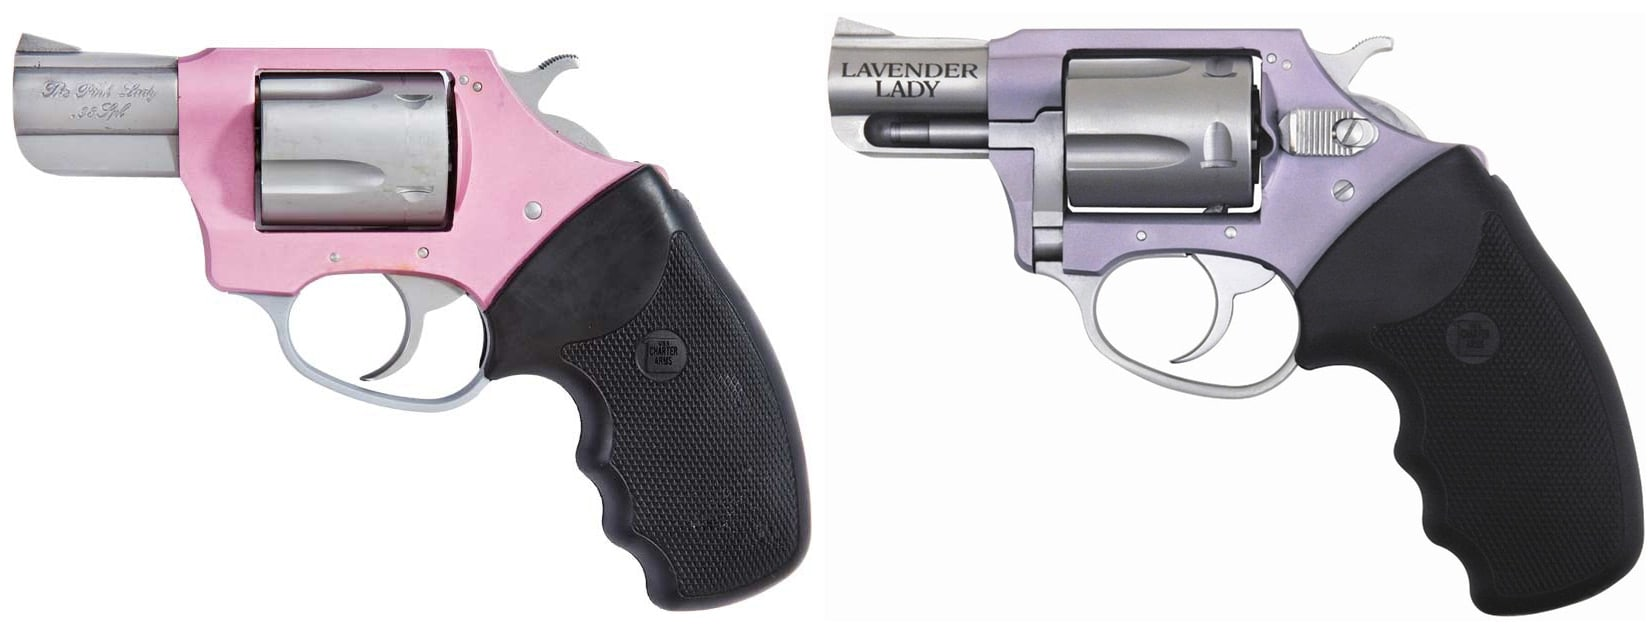 Charter Arms revolvers: The Pink lady, left, and The Lavender Lady. (Photo: Charter Arms)